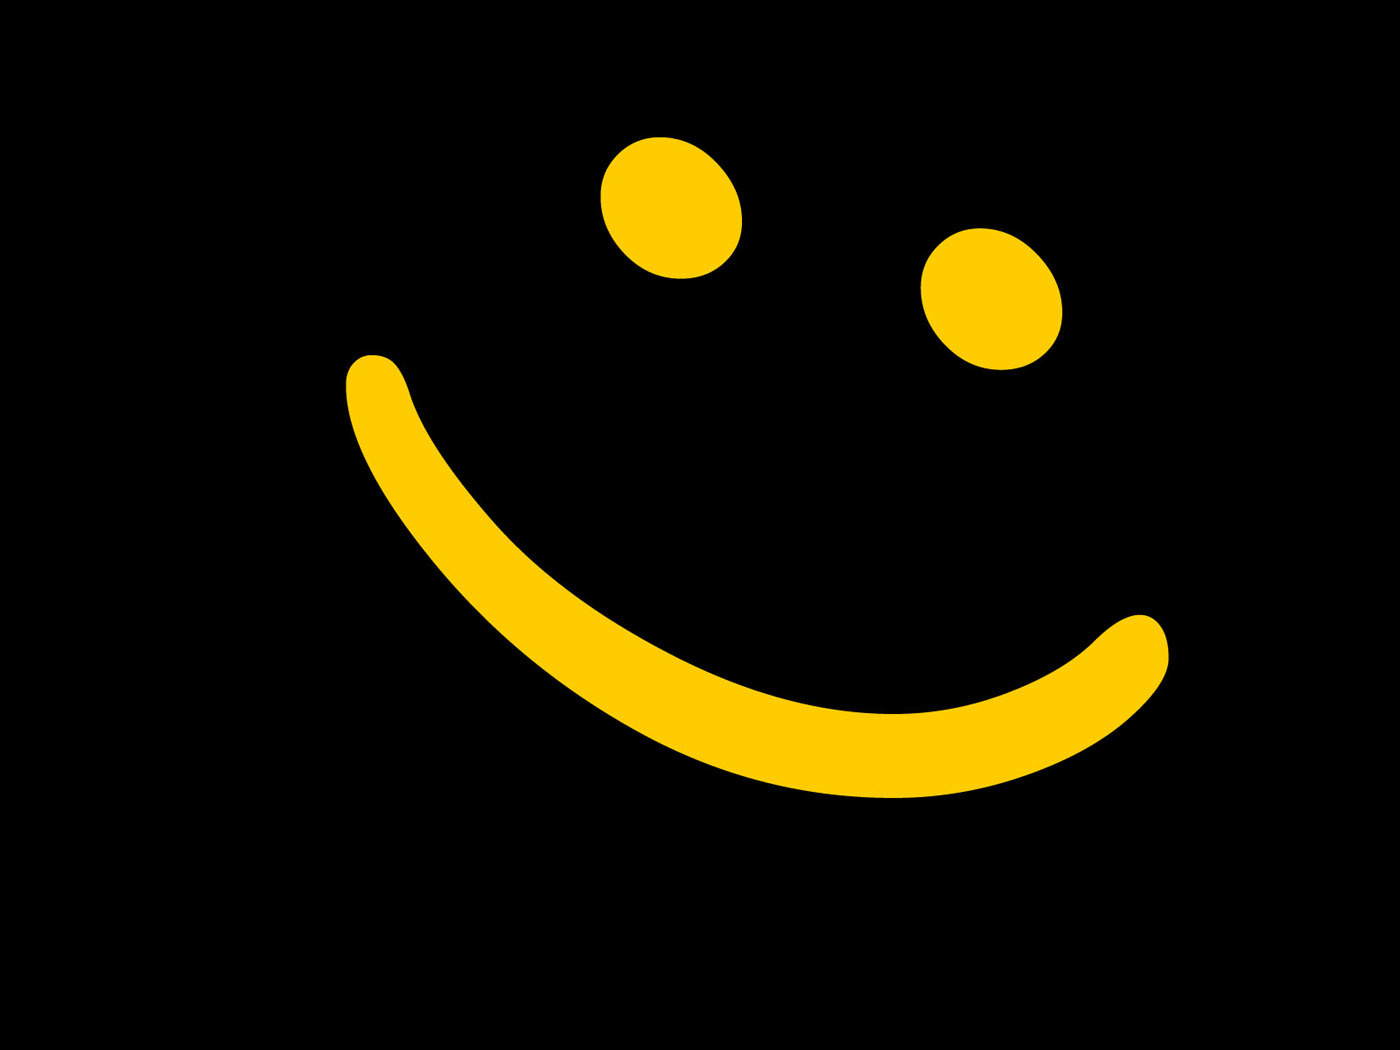 Smile Wallpapers 31227 1400x1050 px HDWallSourcecom